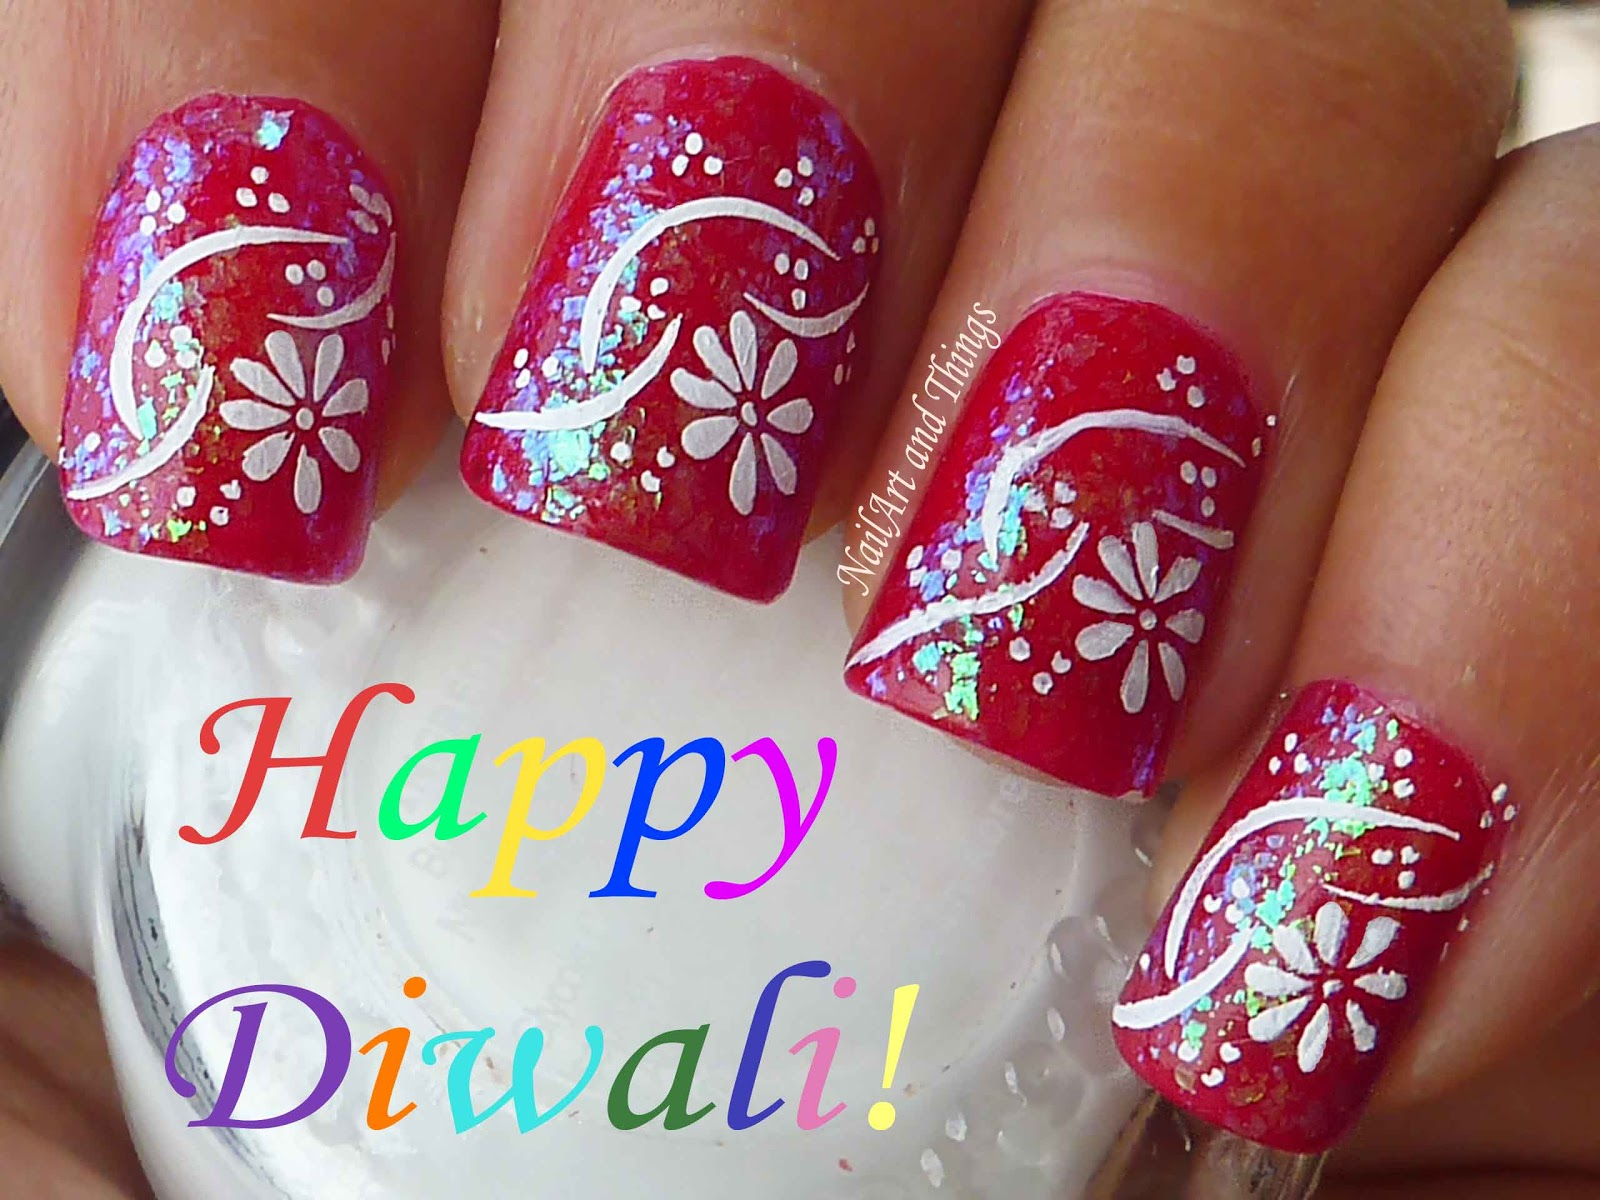 NailArt and Things: Diwali Nail Art: Wish you all A very Happy Diwali!!